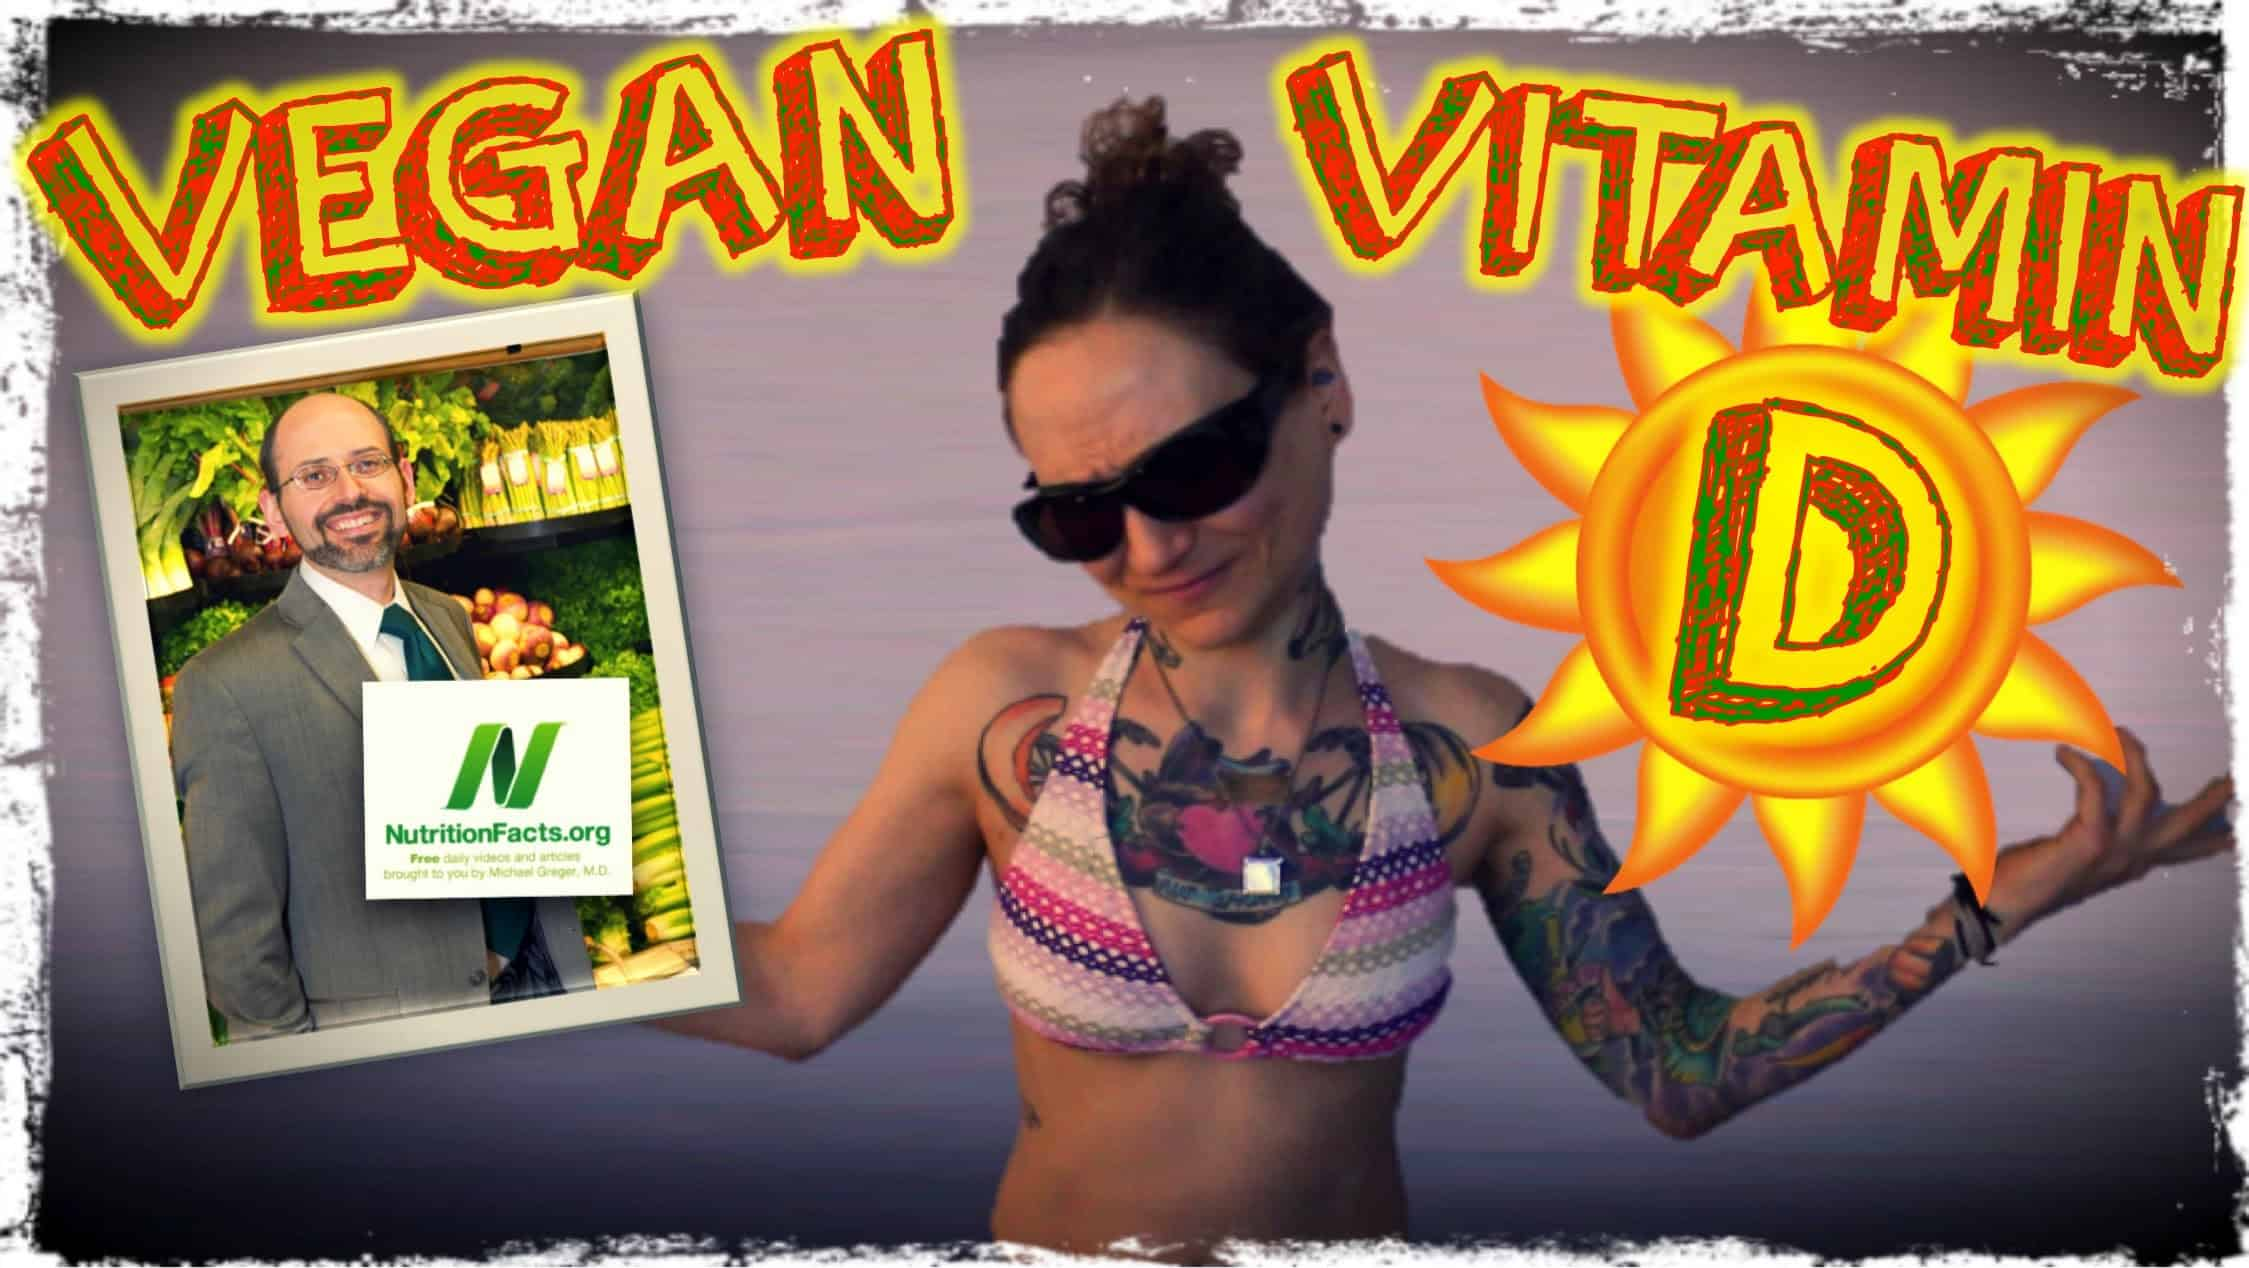 Is A Vegan Diet Vitamin D Deficient? | Dr. Michael Greger of Nutritionfacts.org